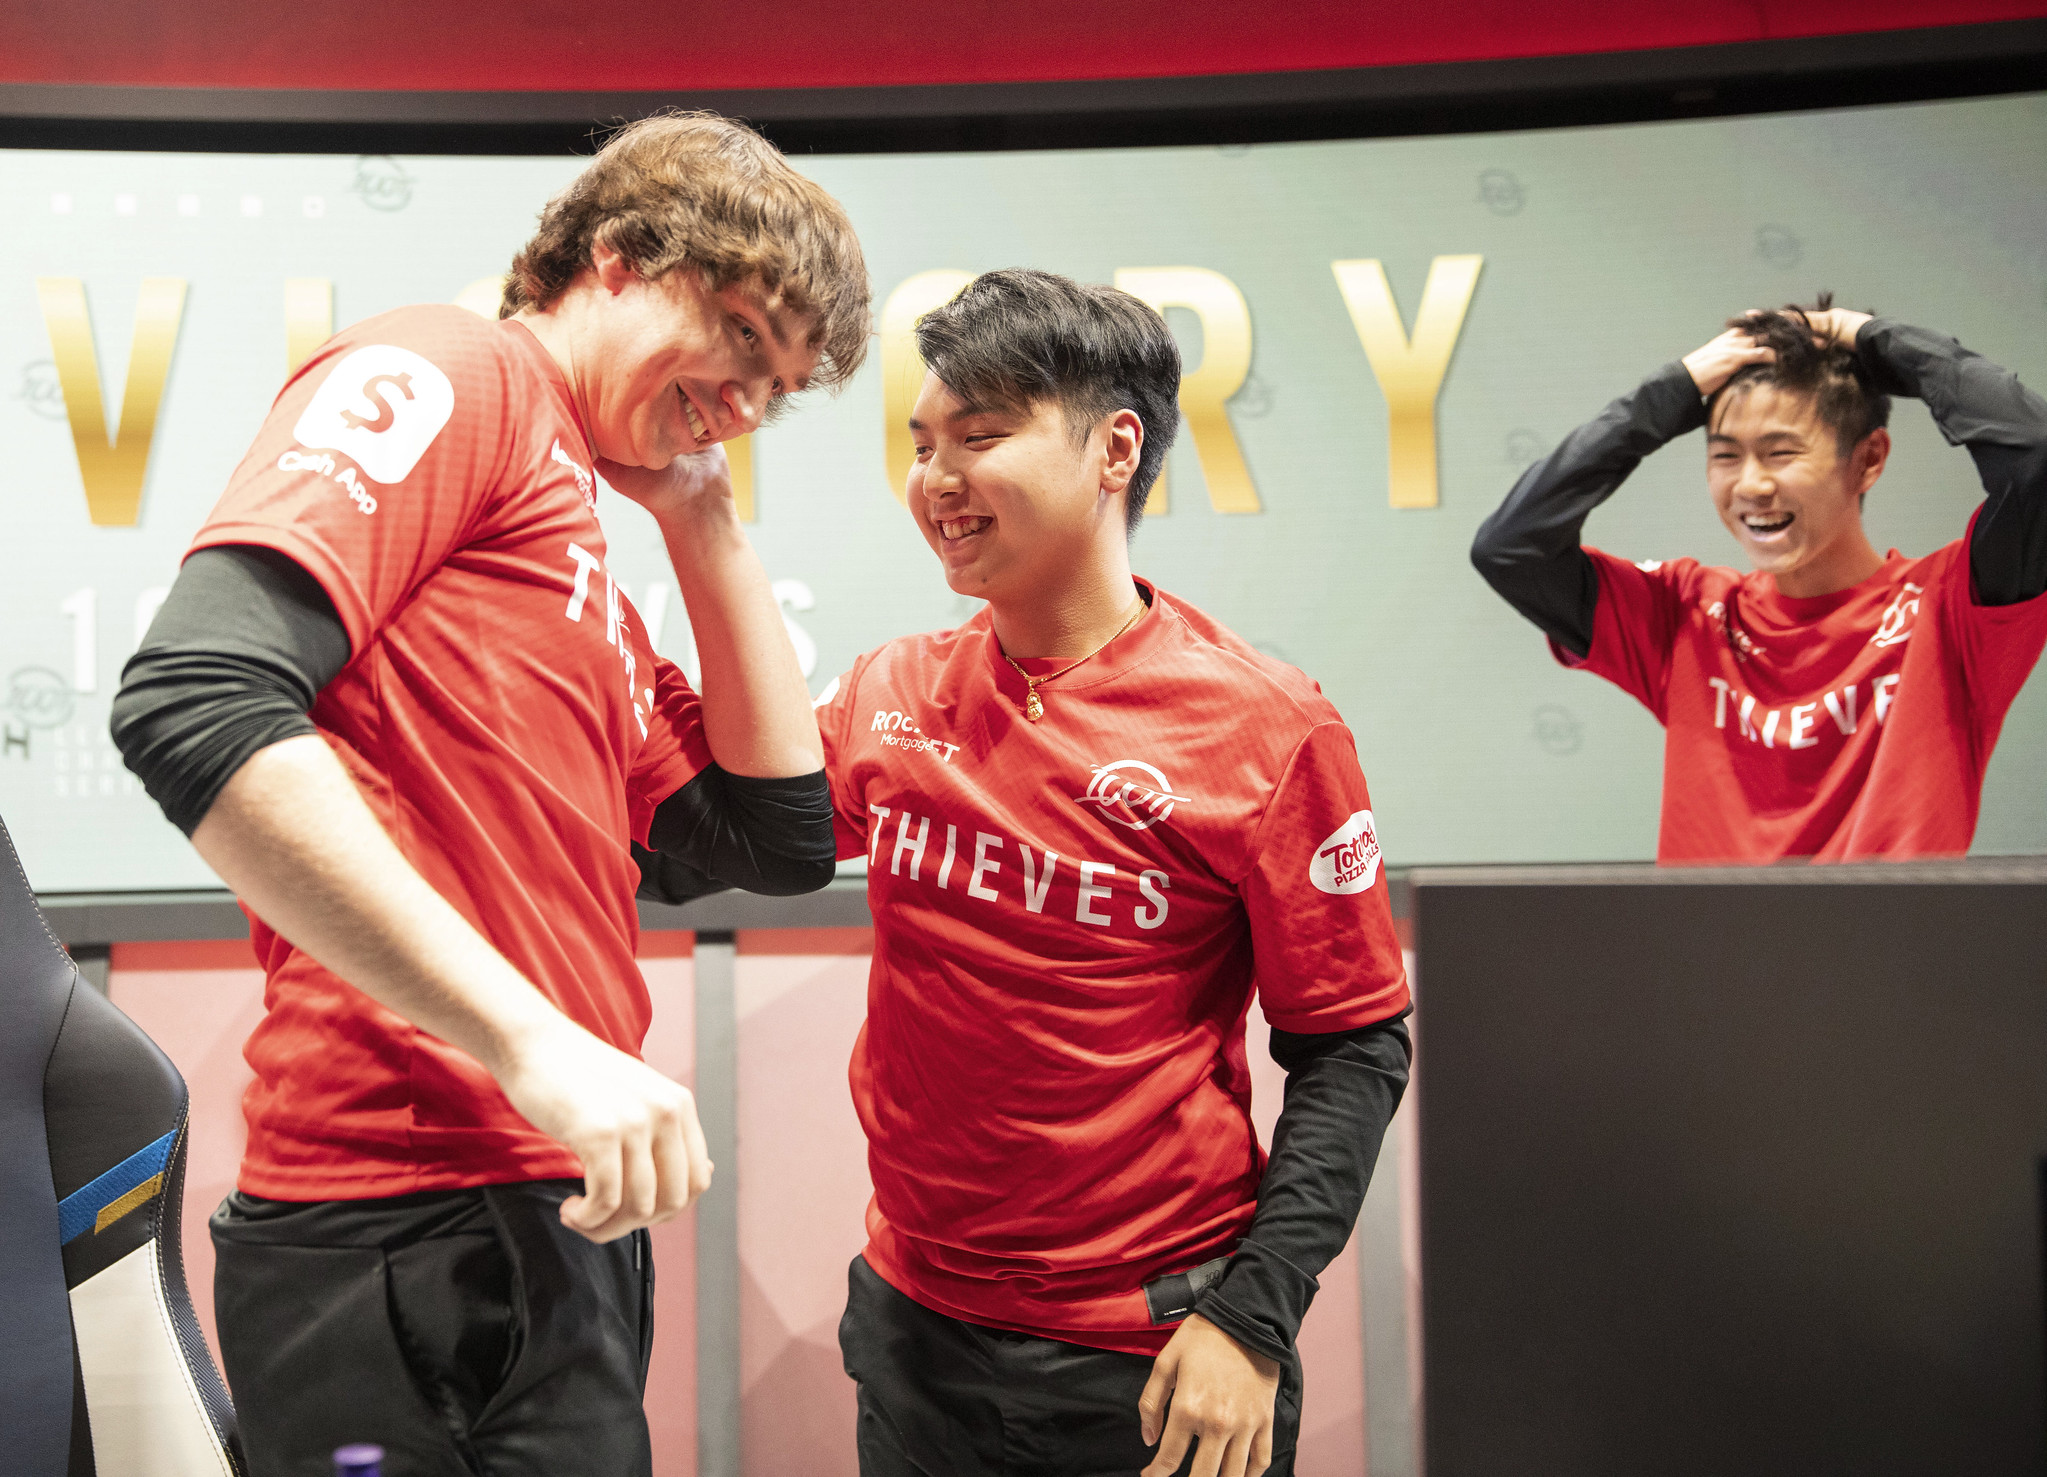 Meteos and Ryoma celebrate at the LCS studio